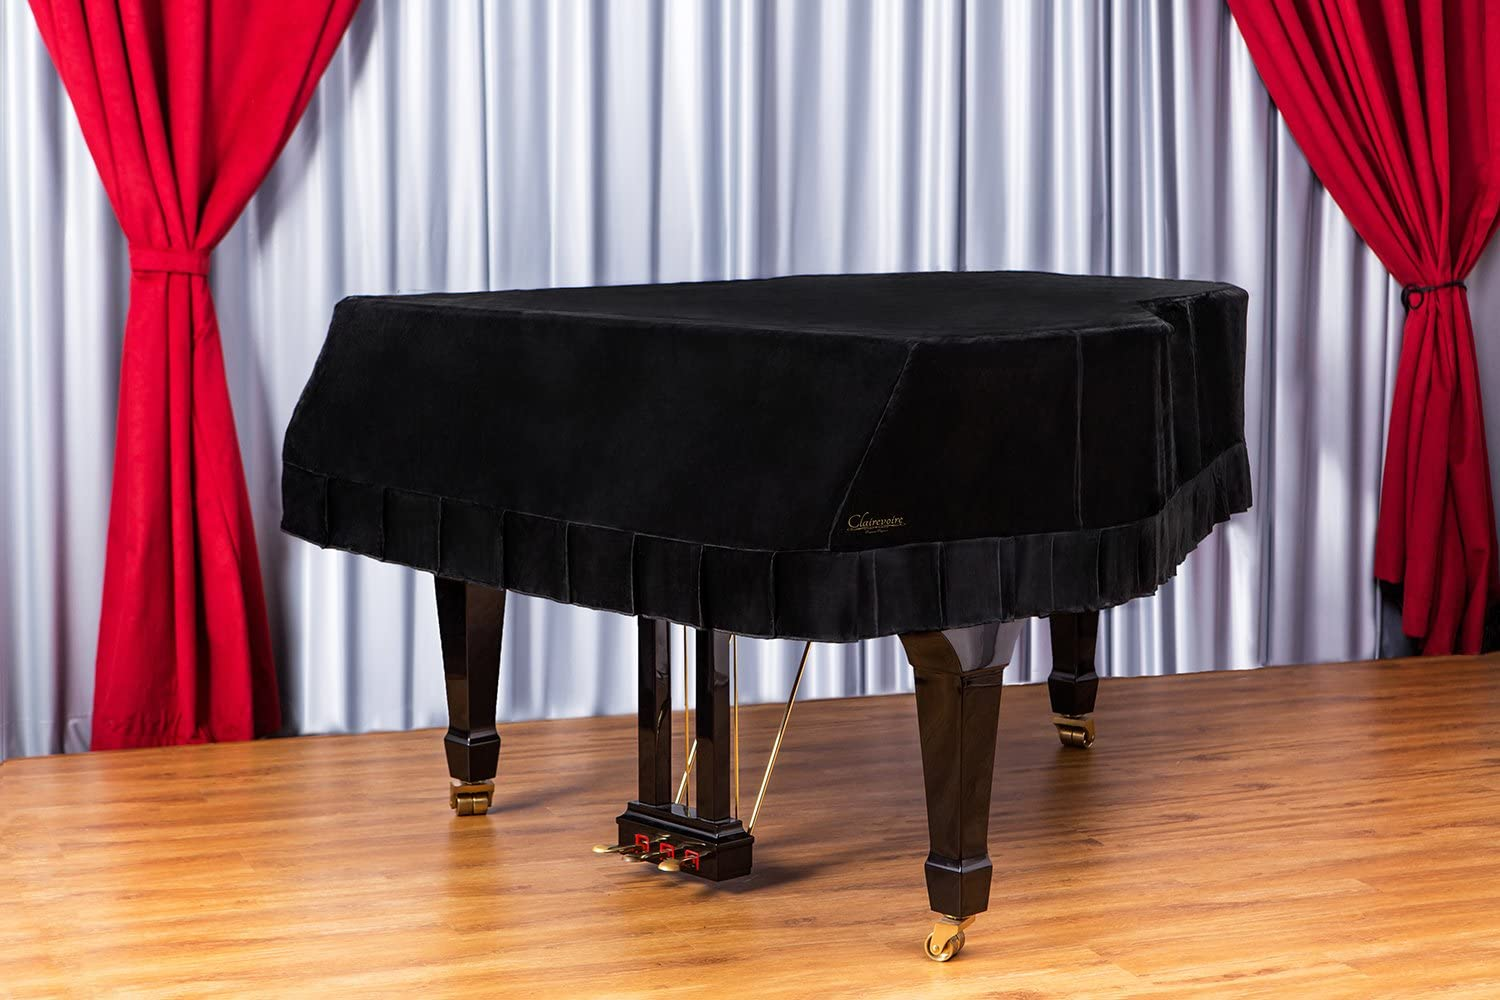 Clairevoire Grandeur: Premium Velvet Grand Piano Cover [C1] | Handcrafted | Luxury-grade Velvet | Anti-dust/blemish/scratch | Gentle Climate Protection | For Yamaha, Steinway, Kawai and many others